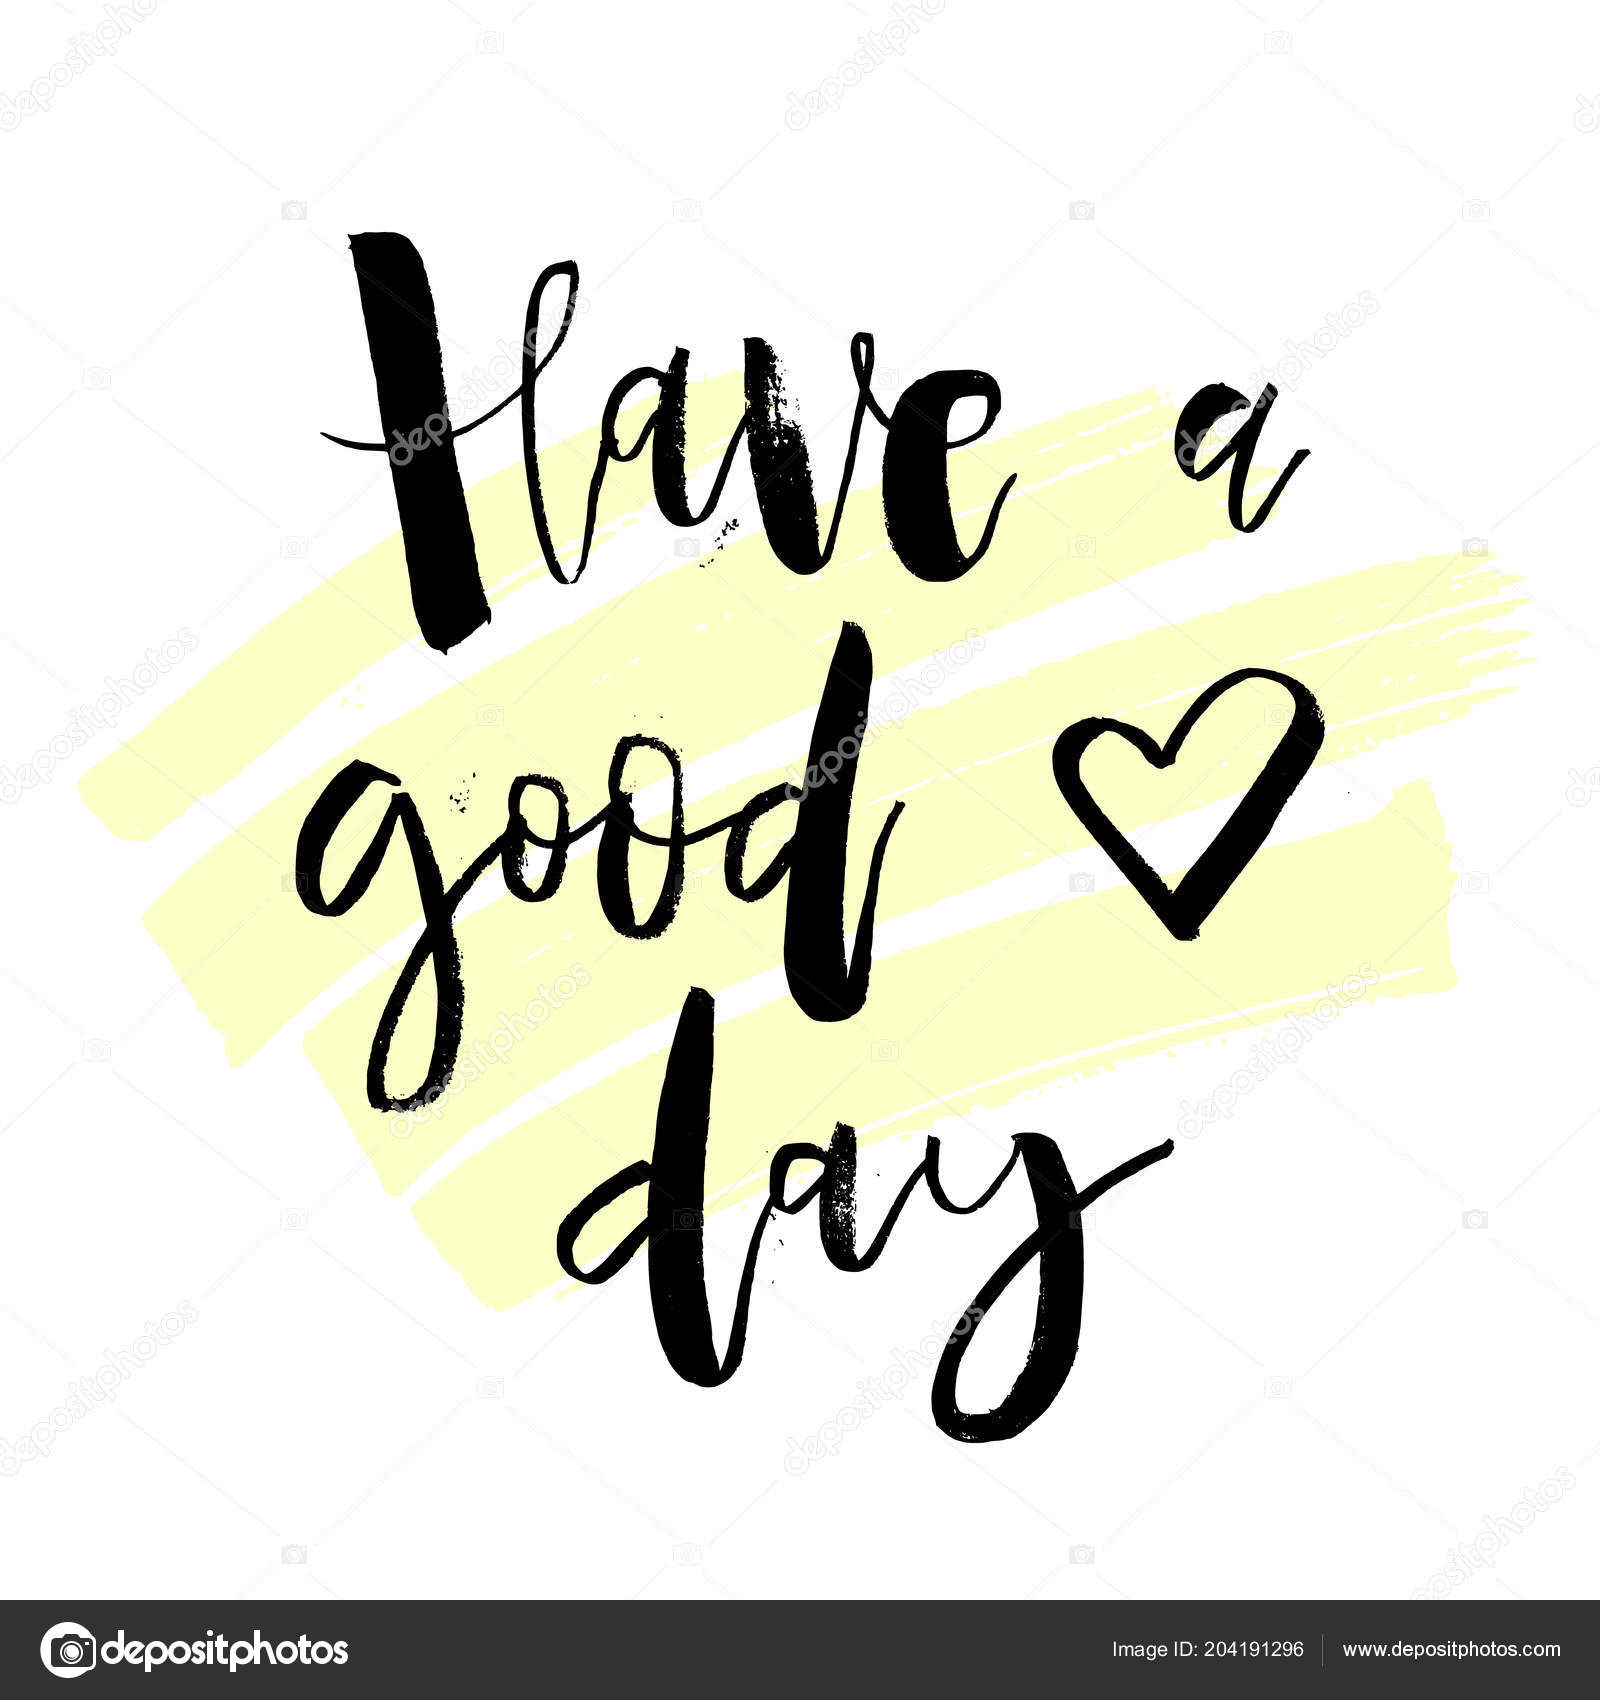 Inspirational Day Quotes: Have Good Day Inspirational Morning Handwritten Lettering